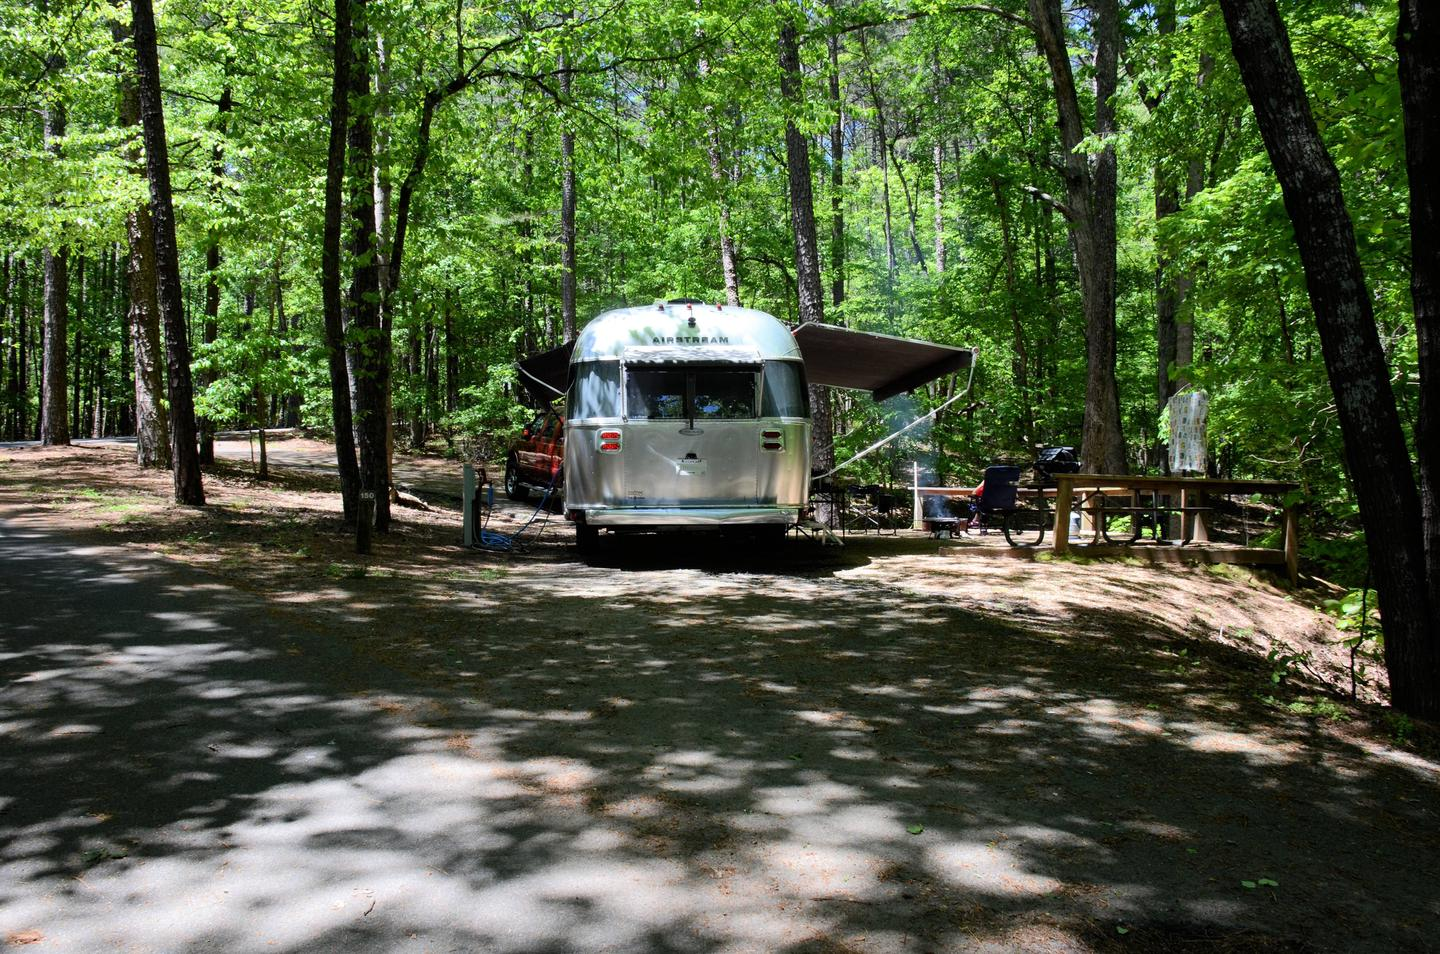 Pull-thru entrance, driveway slope, utilities-side clearance, awning-side clearance.McKinney Campground, campsite 150.